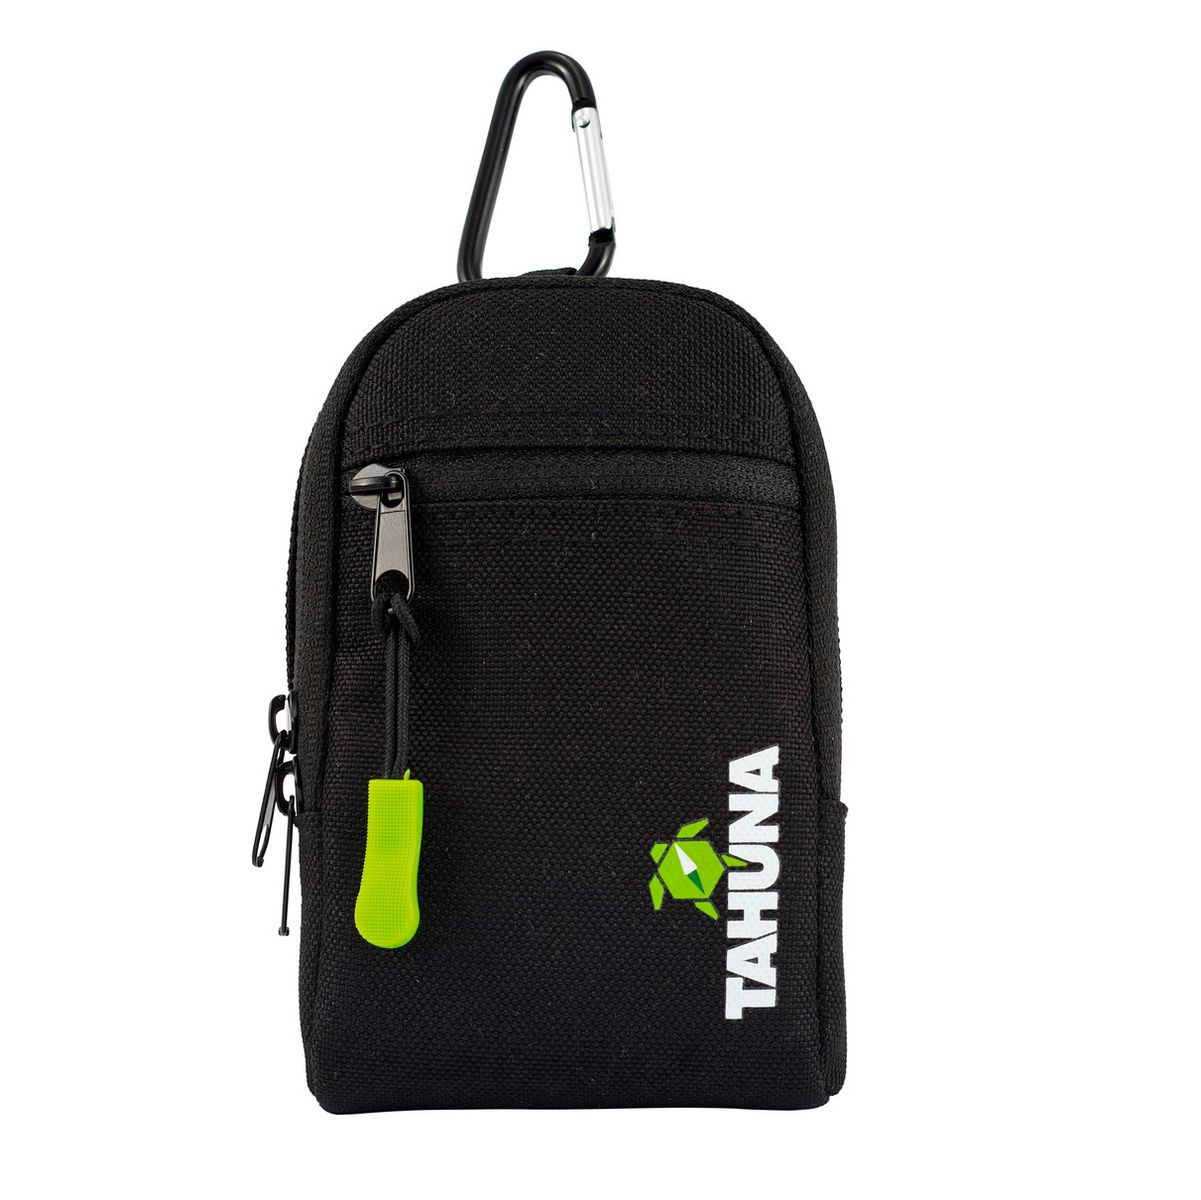 Protective Bag for TEASI GPS Devices